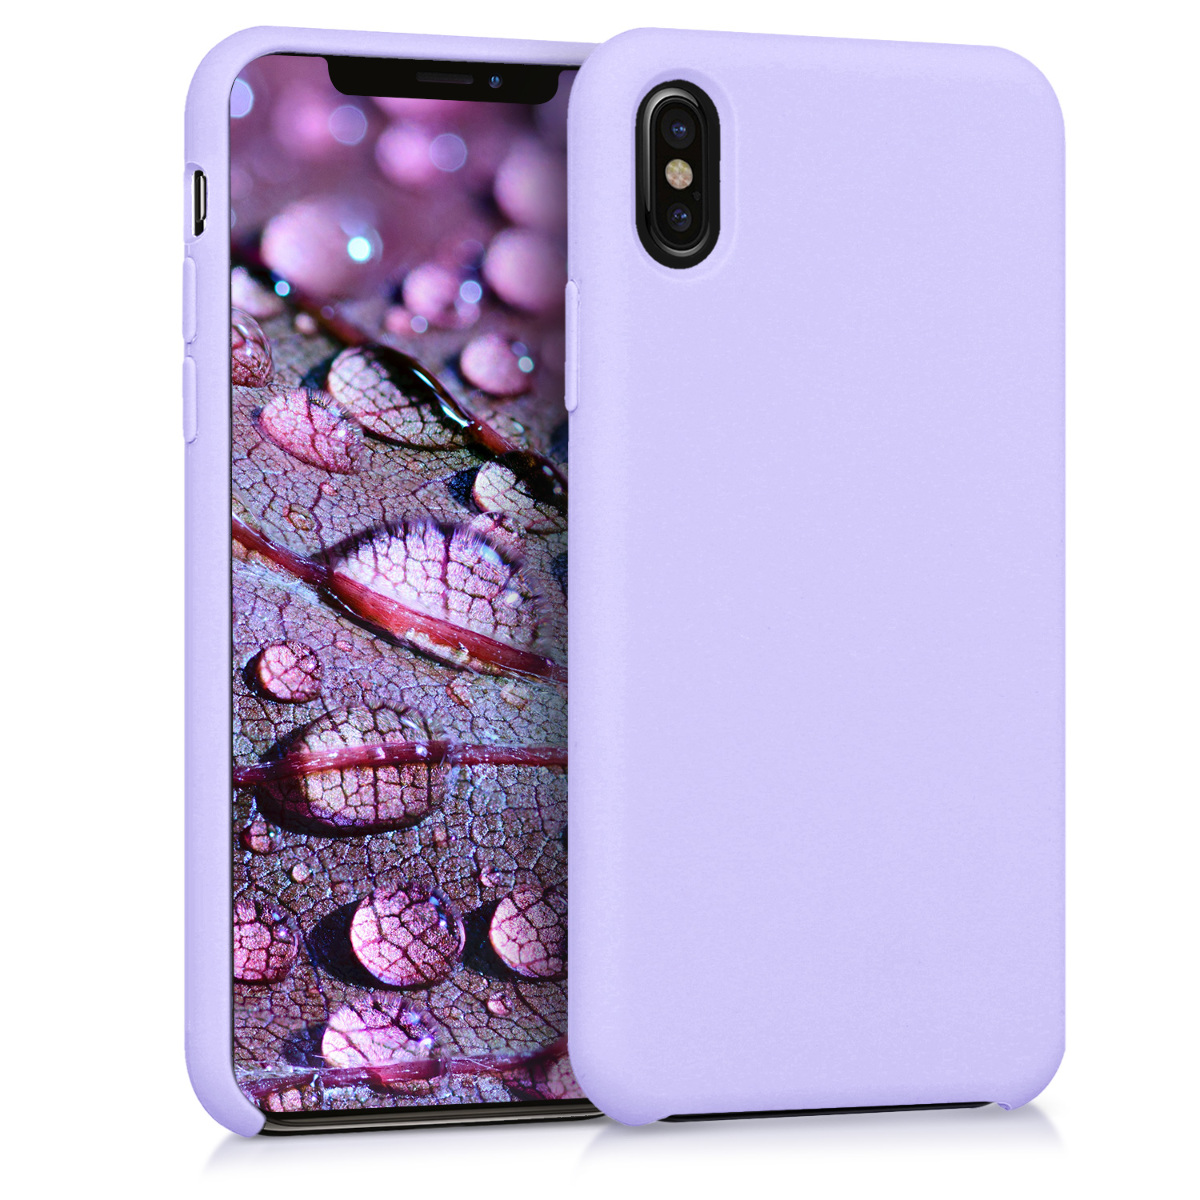 KW Θήκη Σιλικόνης Apple iPhone X - Soft Flexible Rubber Protective Cover - Lavender (42495.108)